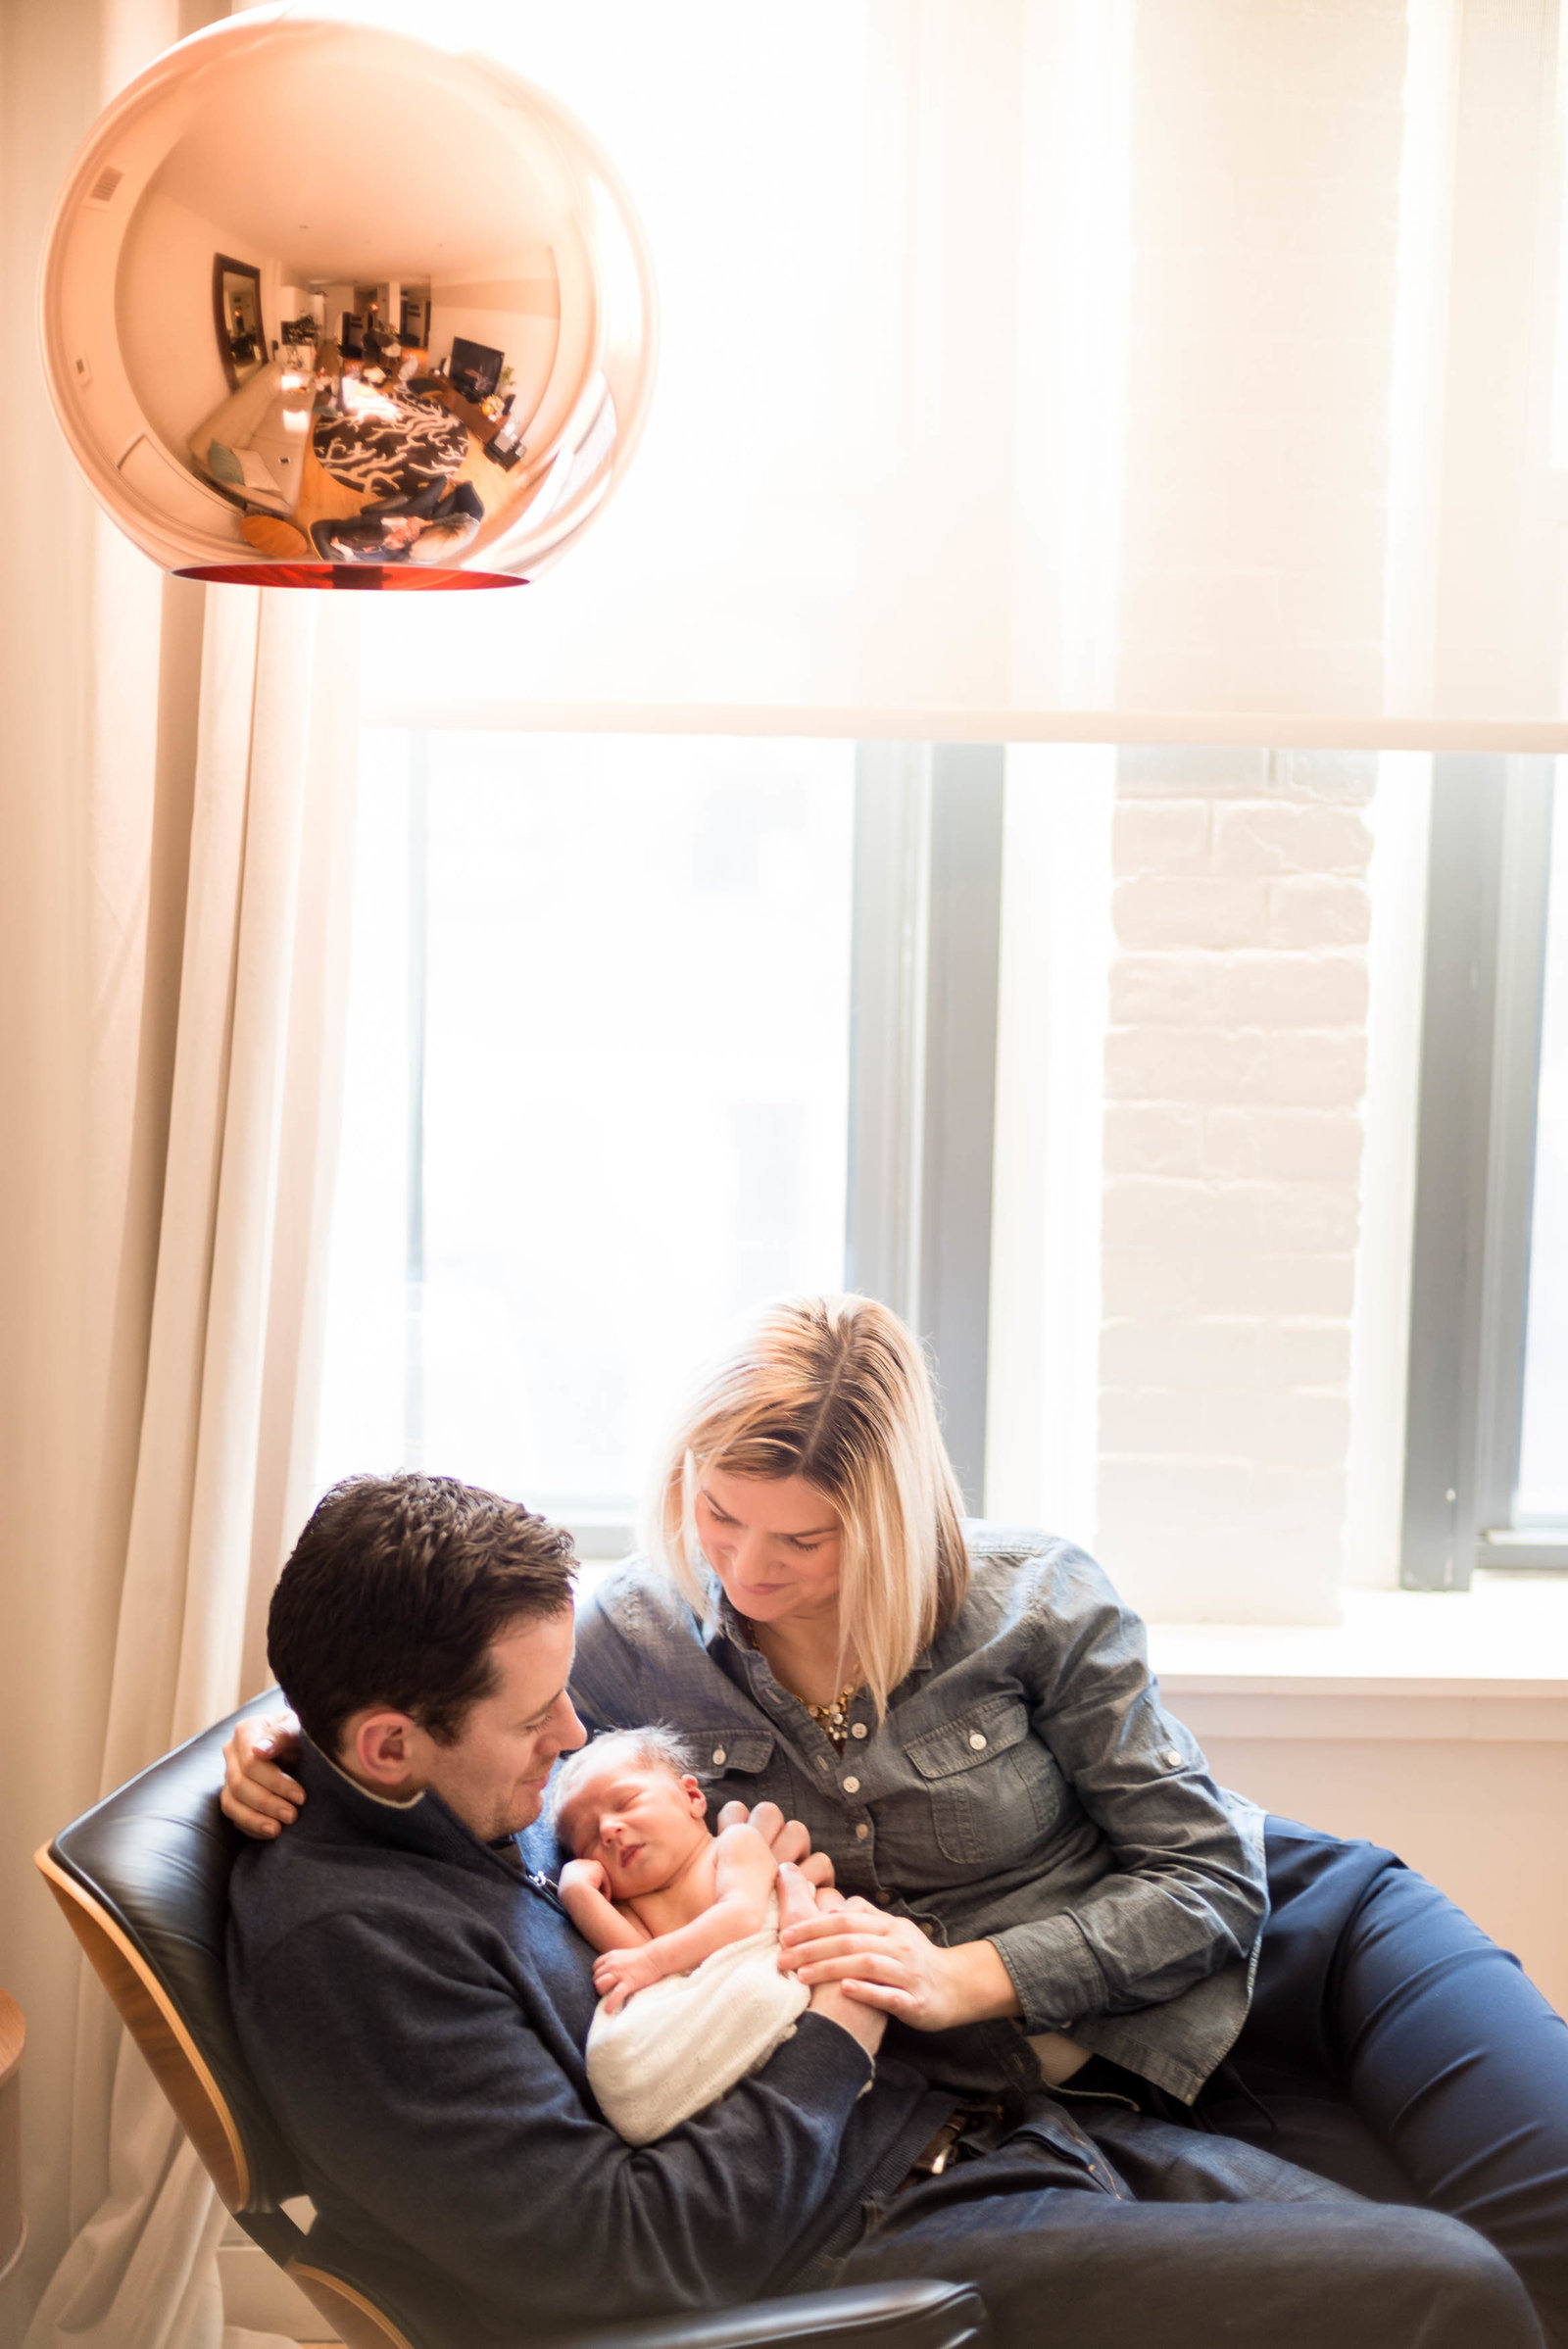 Boston-Newborn-Photographer-Lifestyle-Documentary-Home-Styled-Session-2